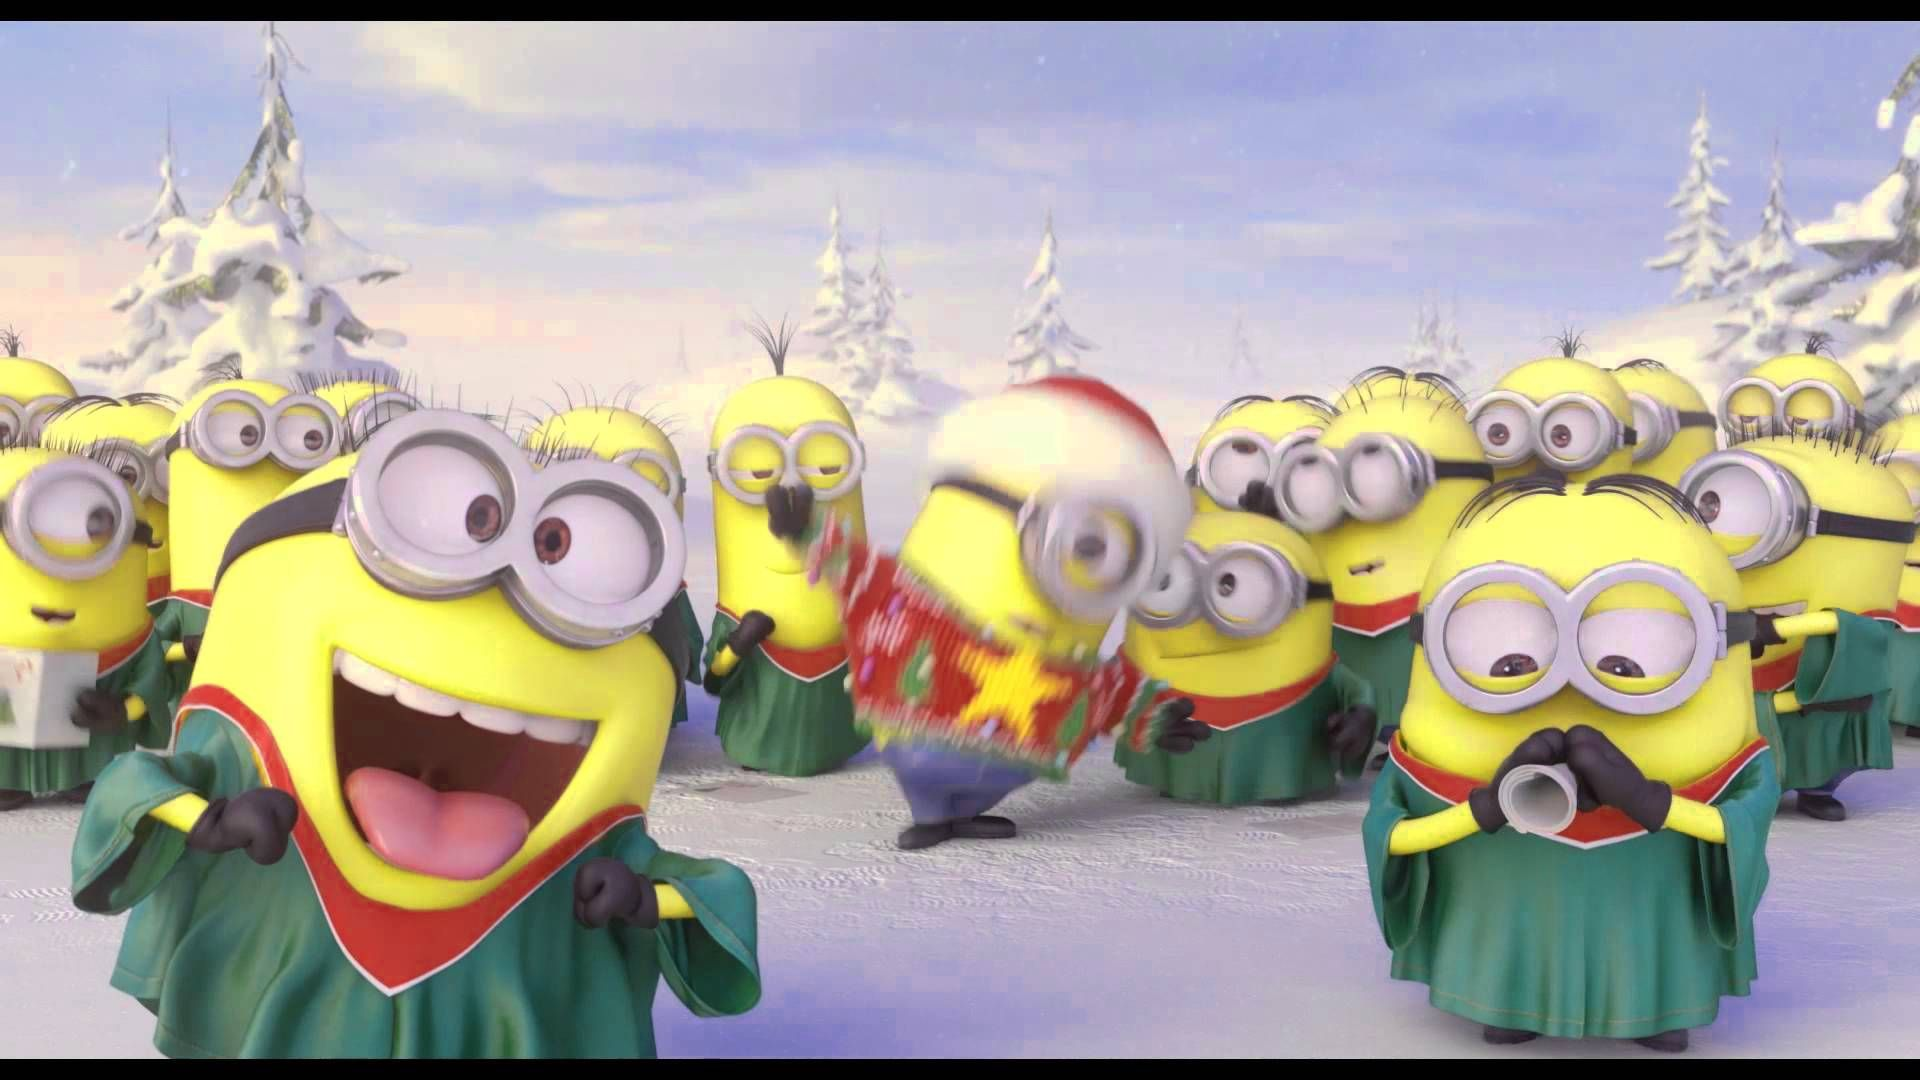 The minions from Despicable me will sing you Christmas carols ...